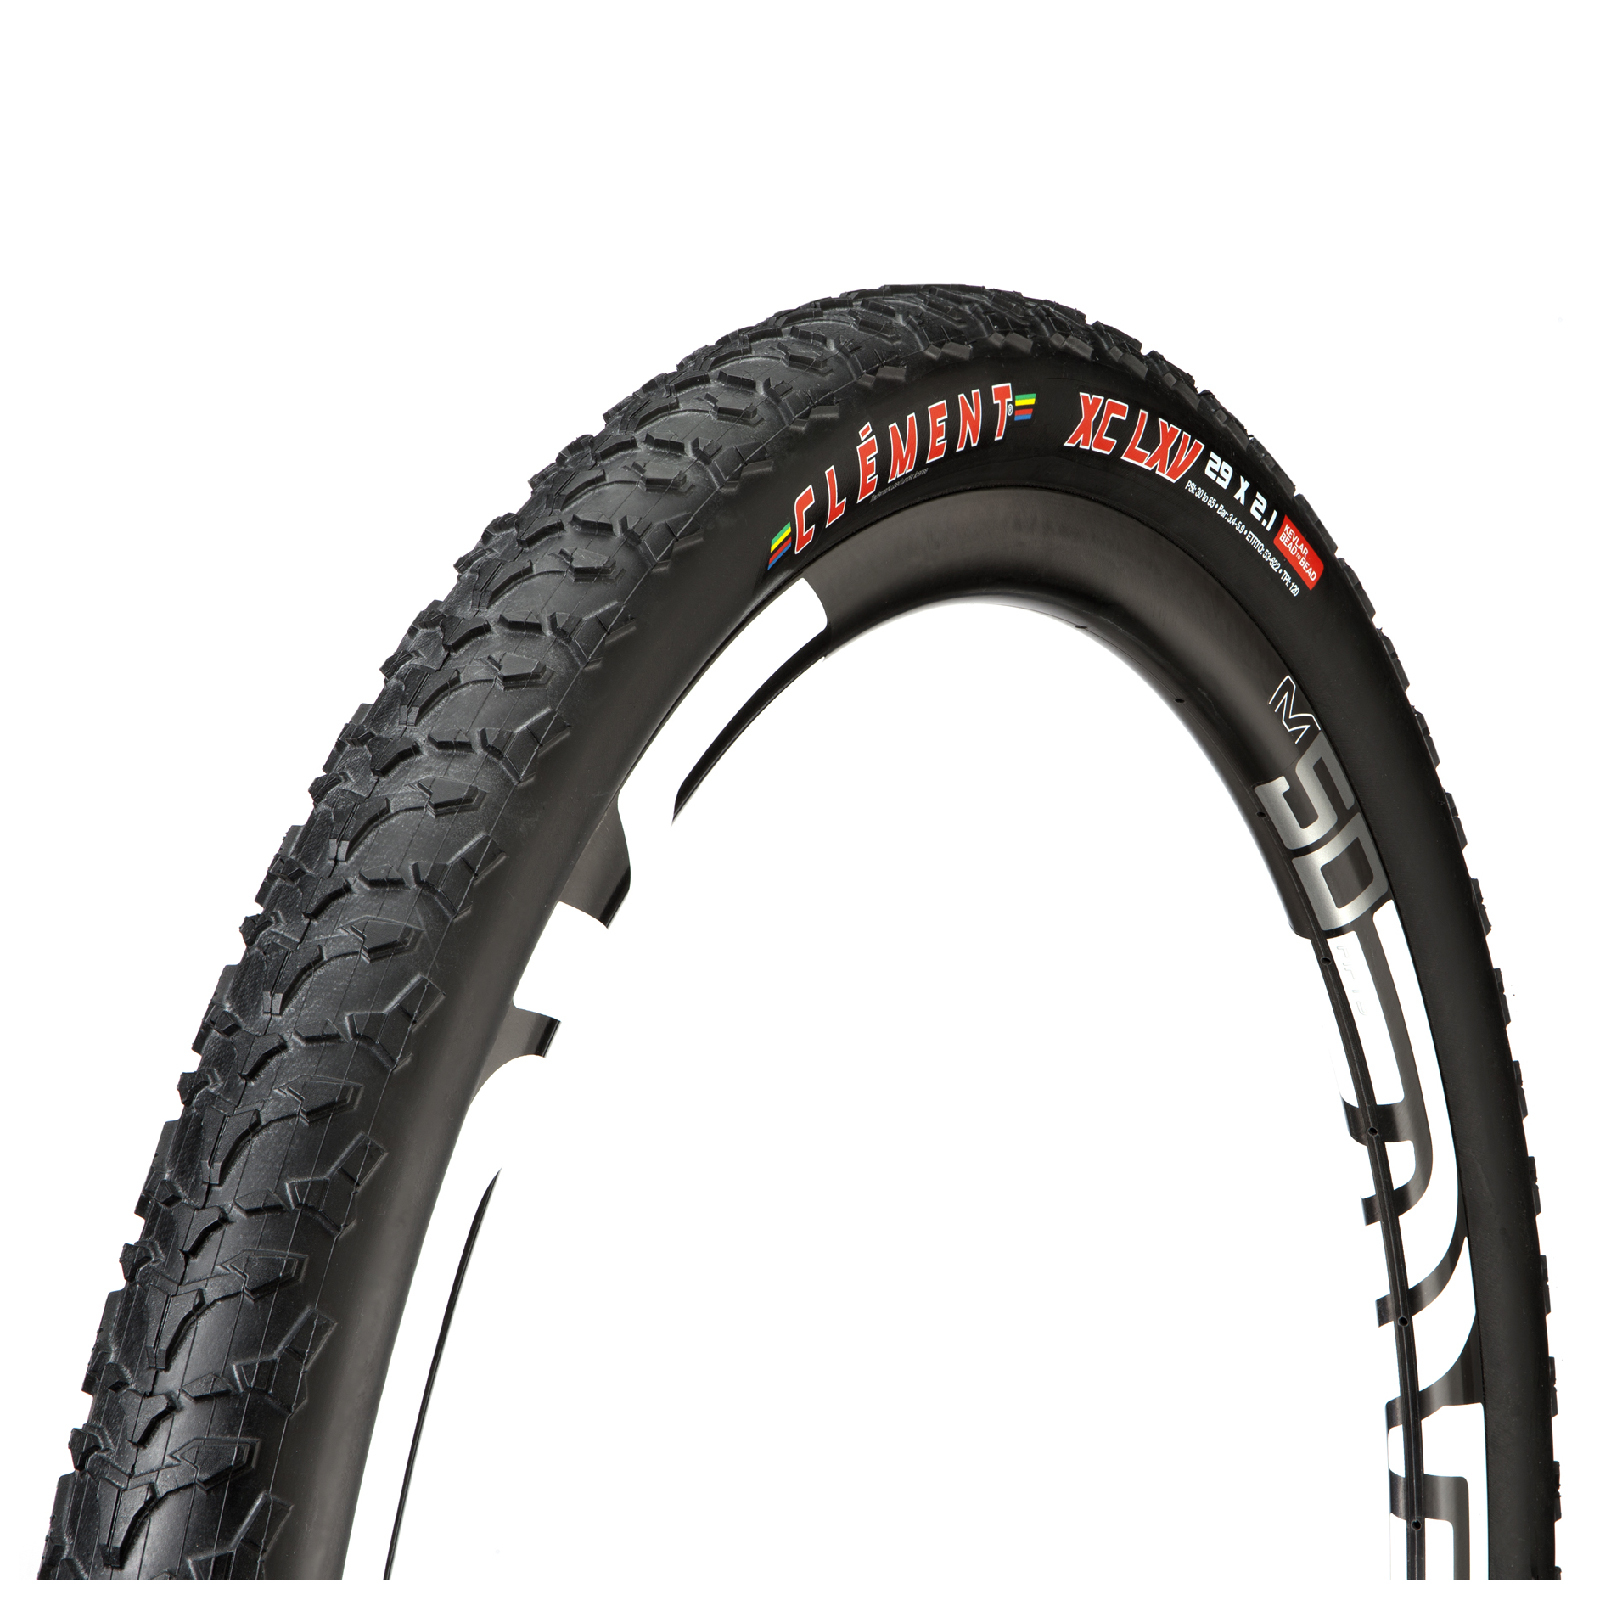 Clement LXV 60TPI MTB Tyre - 29in x 2.10in